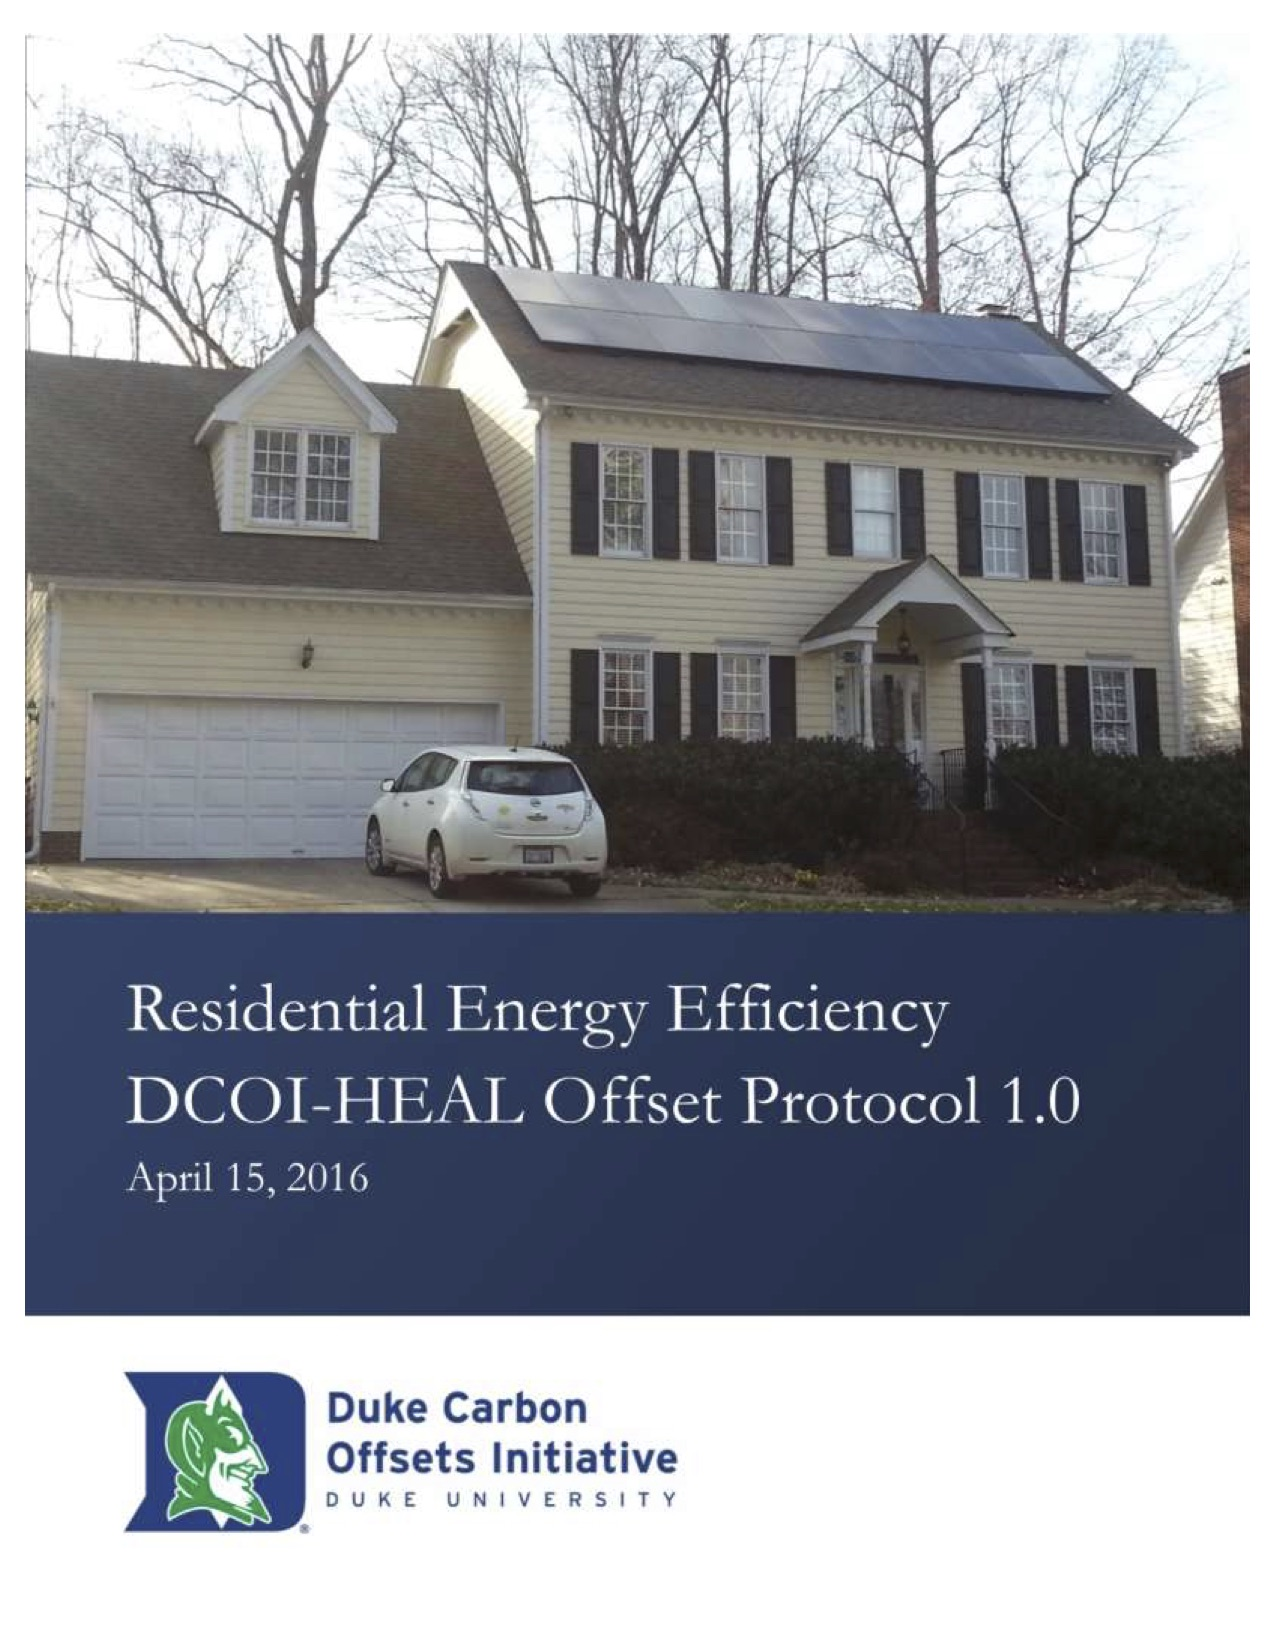 Residential Energy Efficiency Protocol